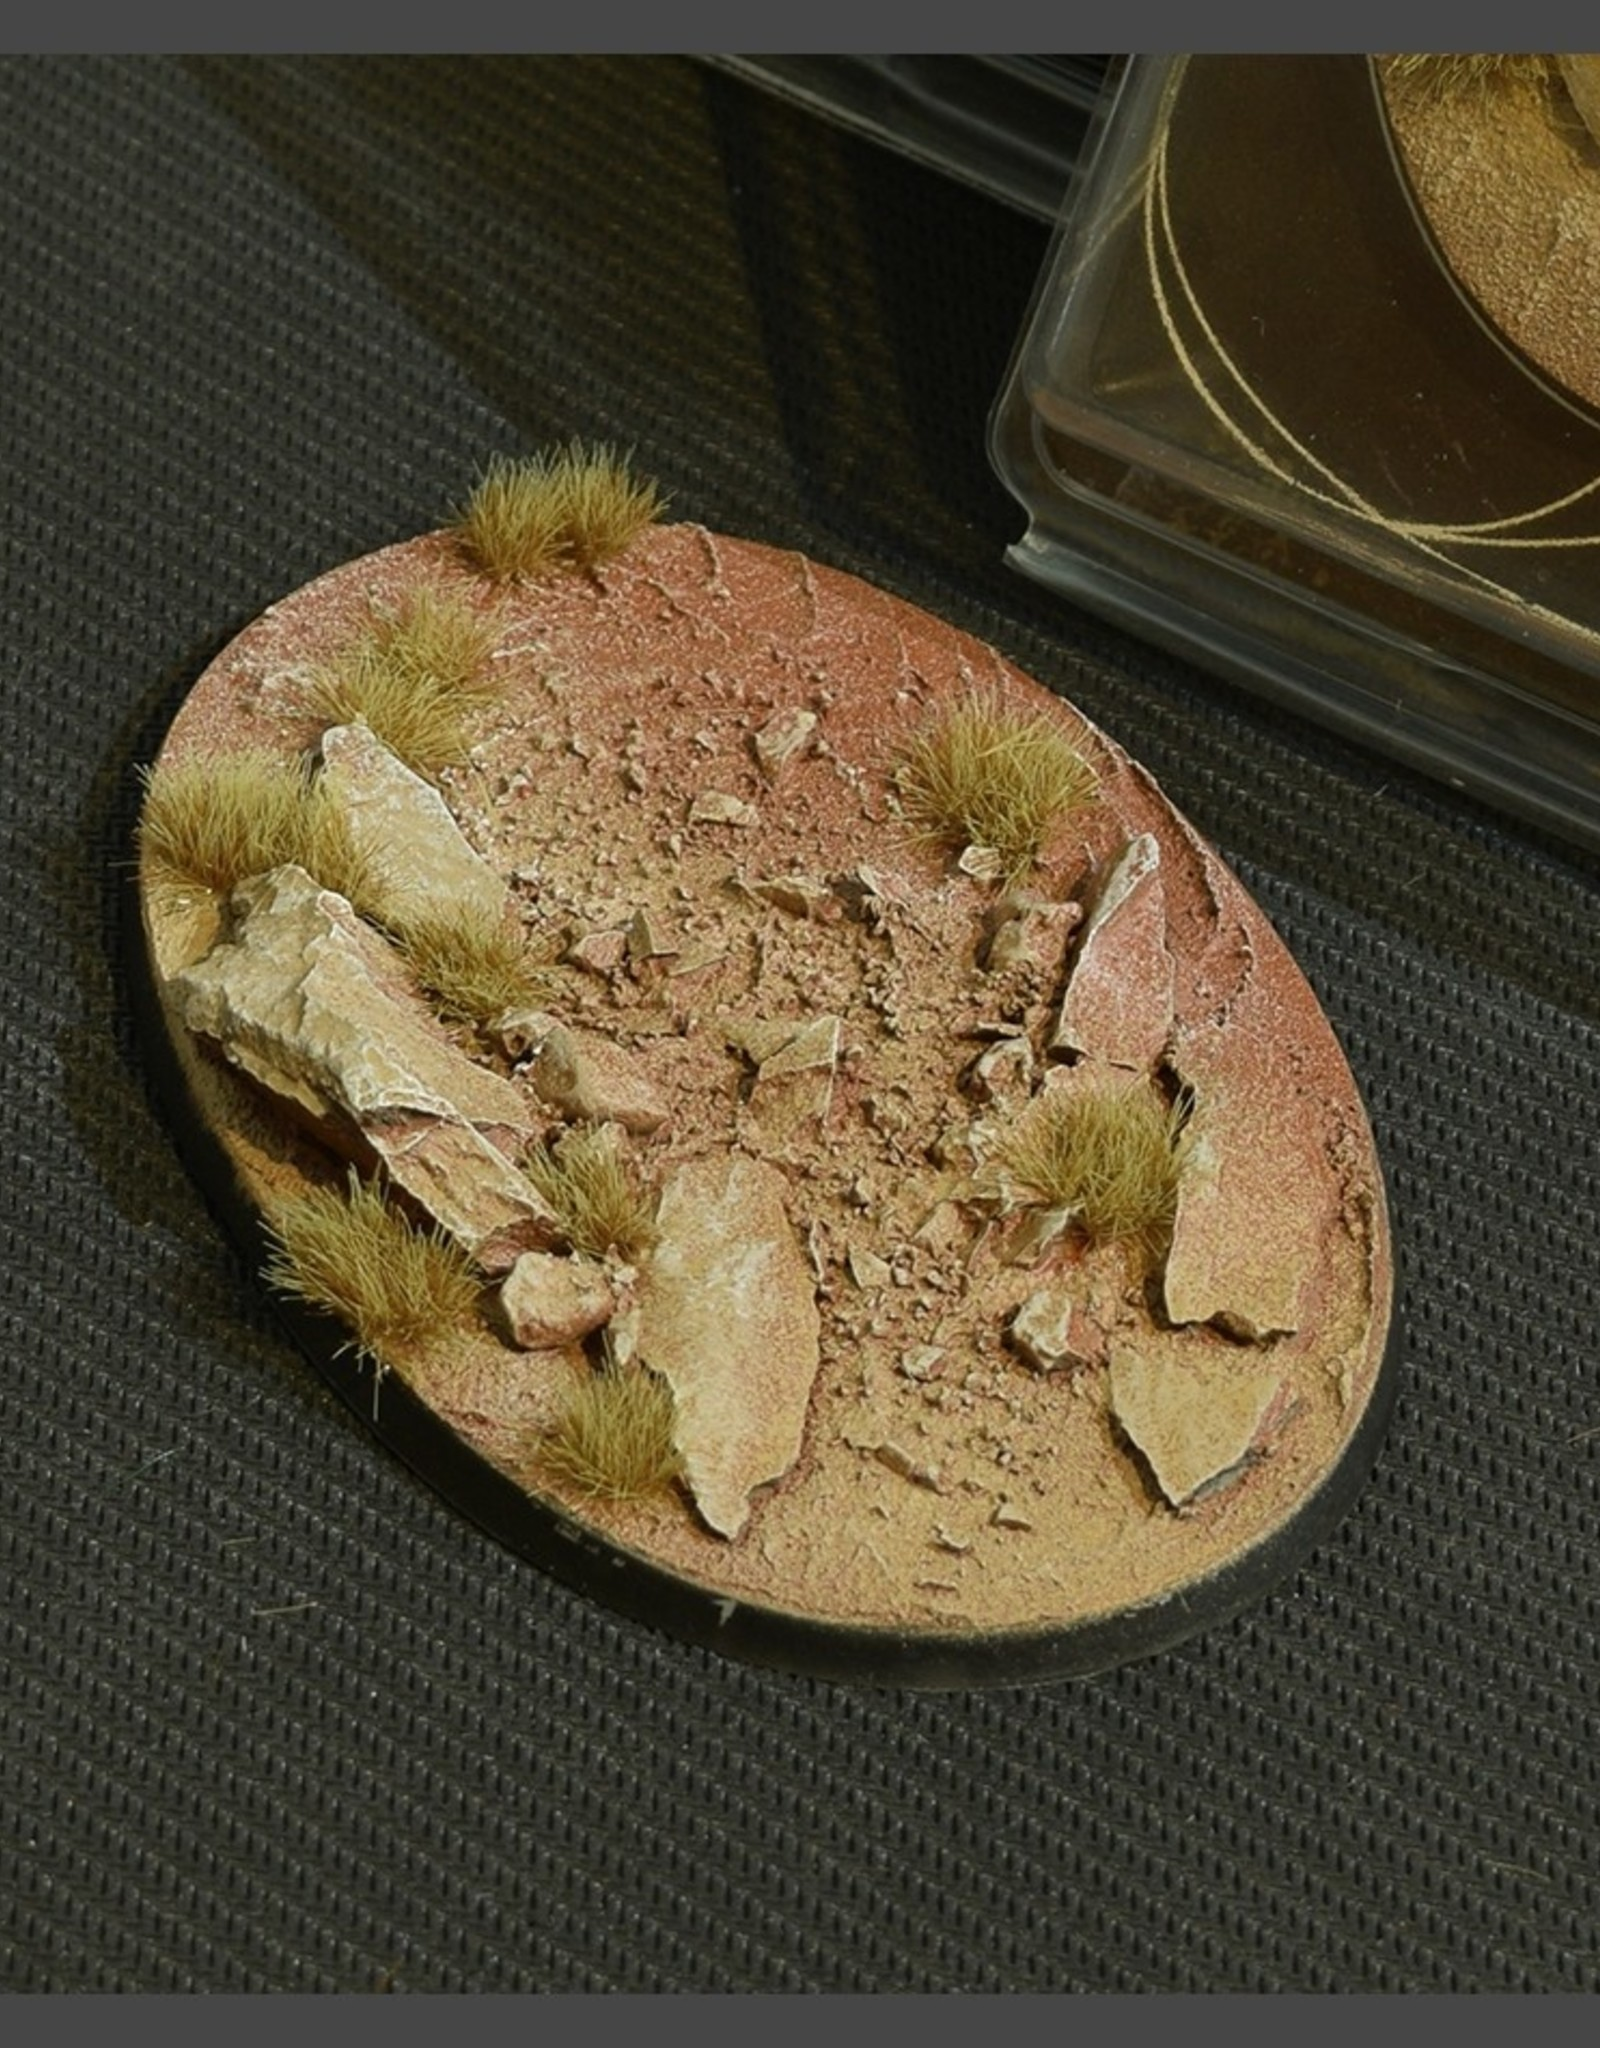 Gamers Grass Badlands Bases Pre-Painted (1x 105mm Oval)